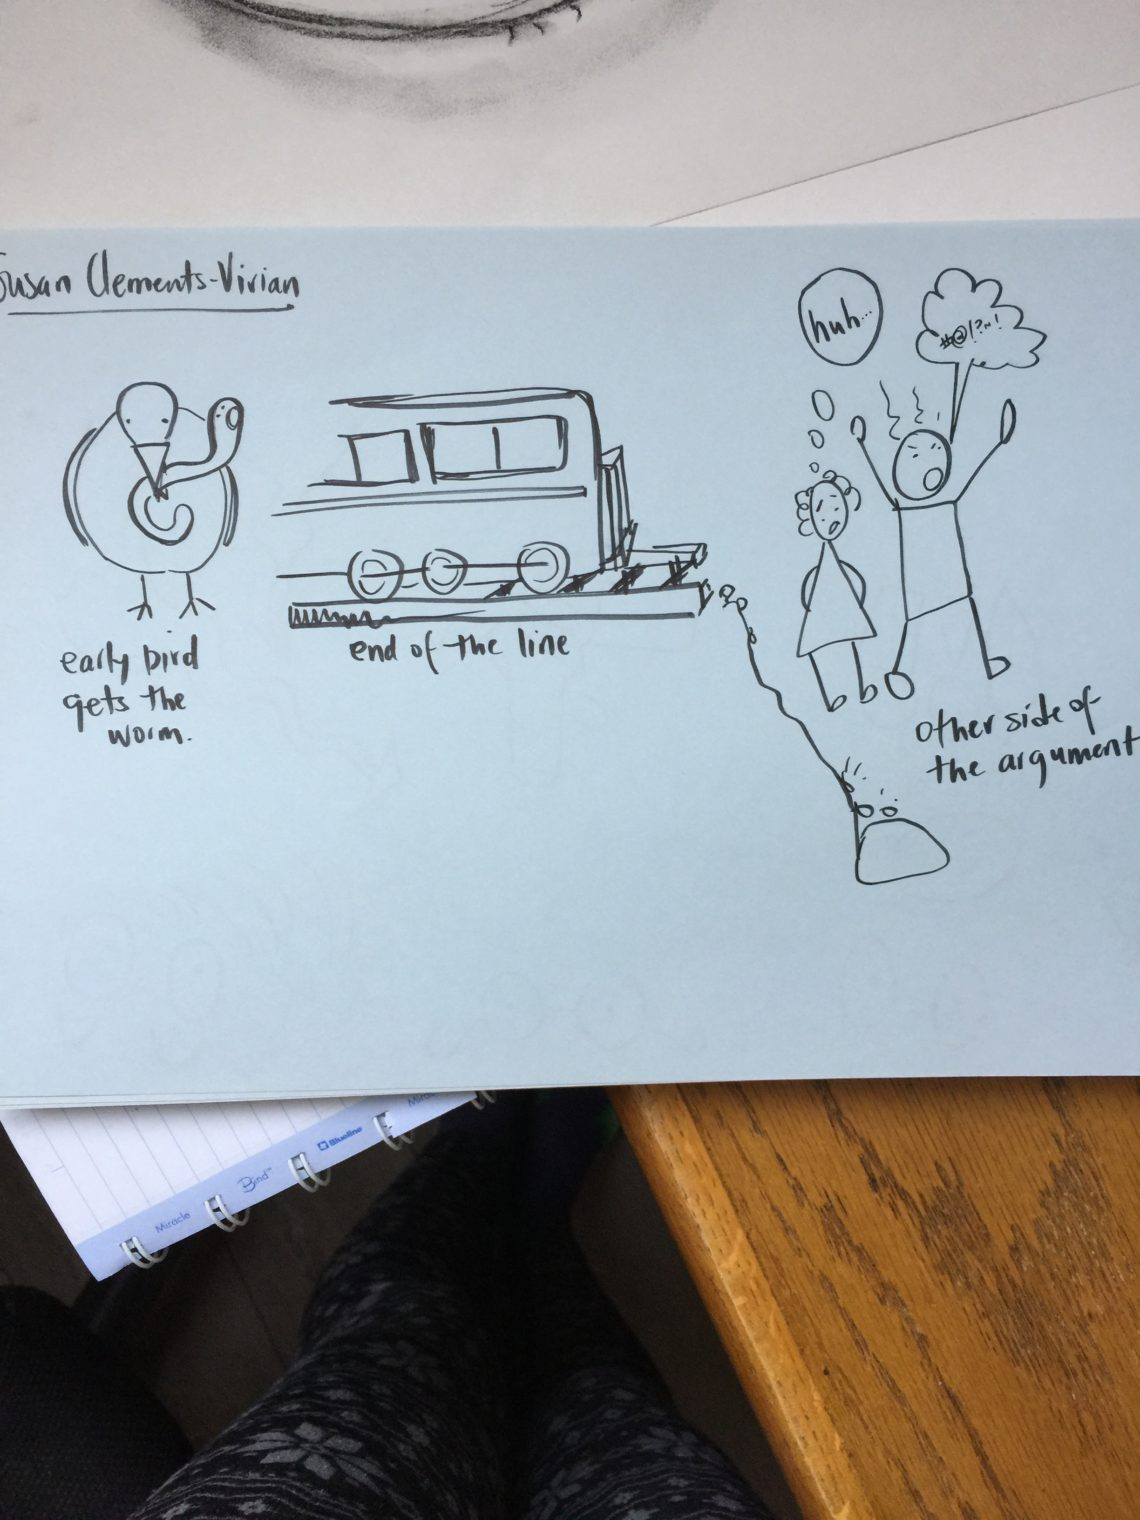 drawing of bird and worm, train at end of tracks, two people arguing